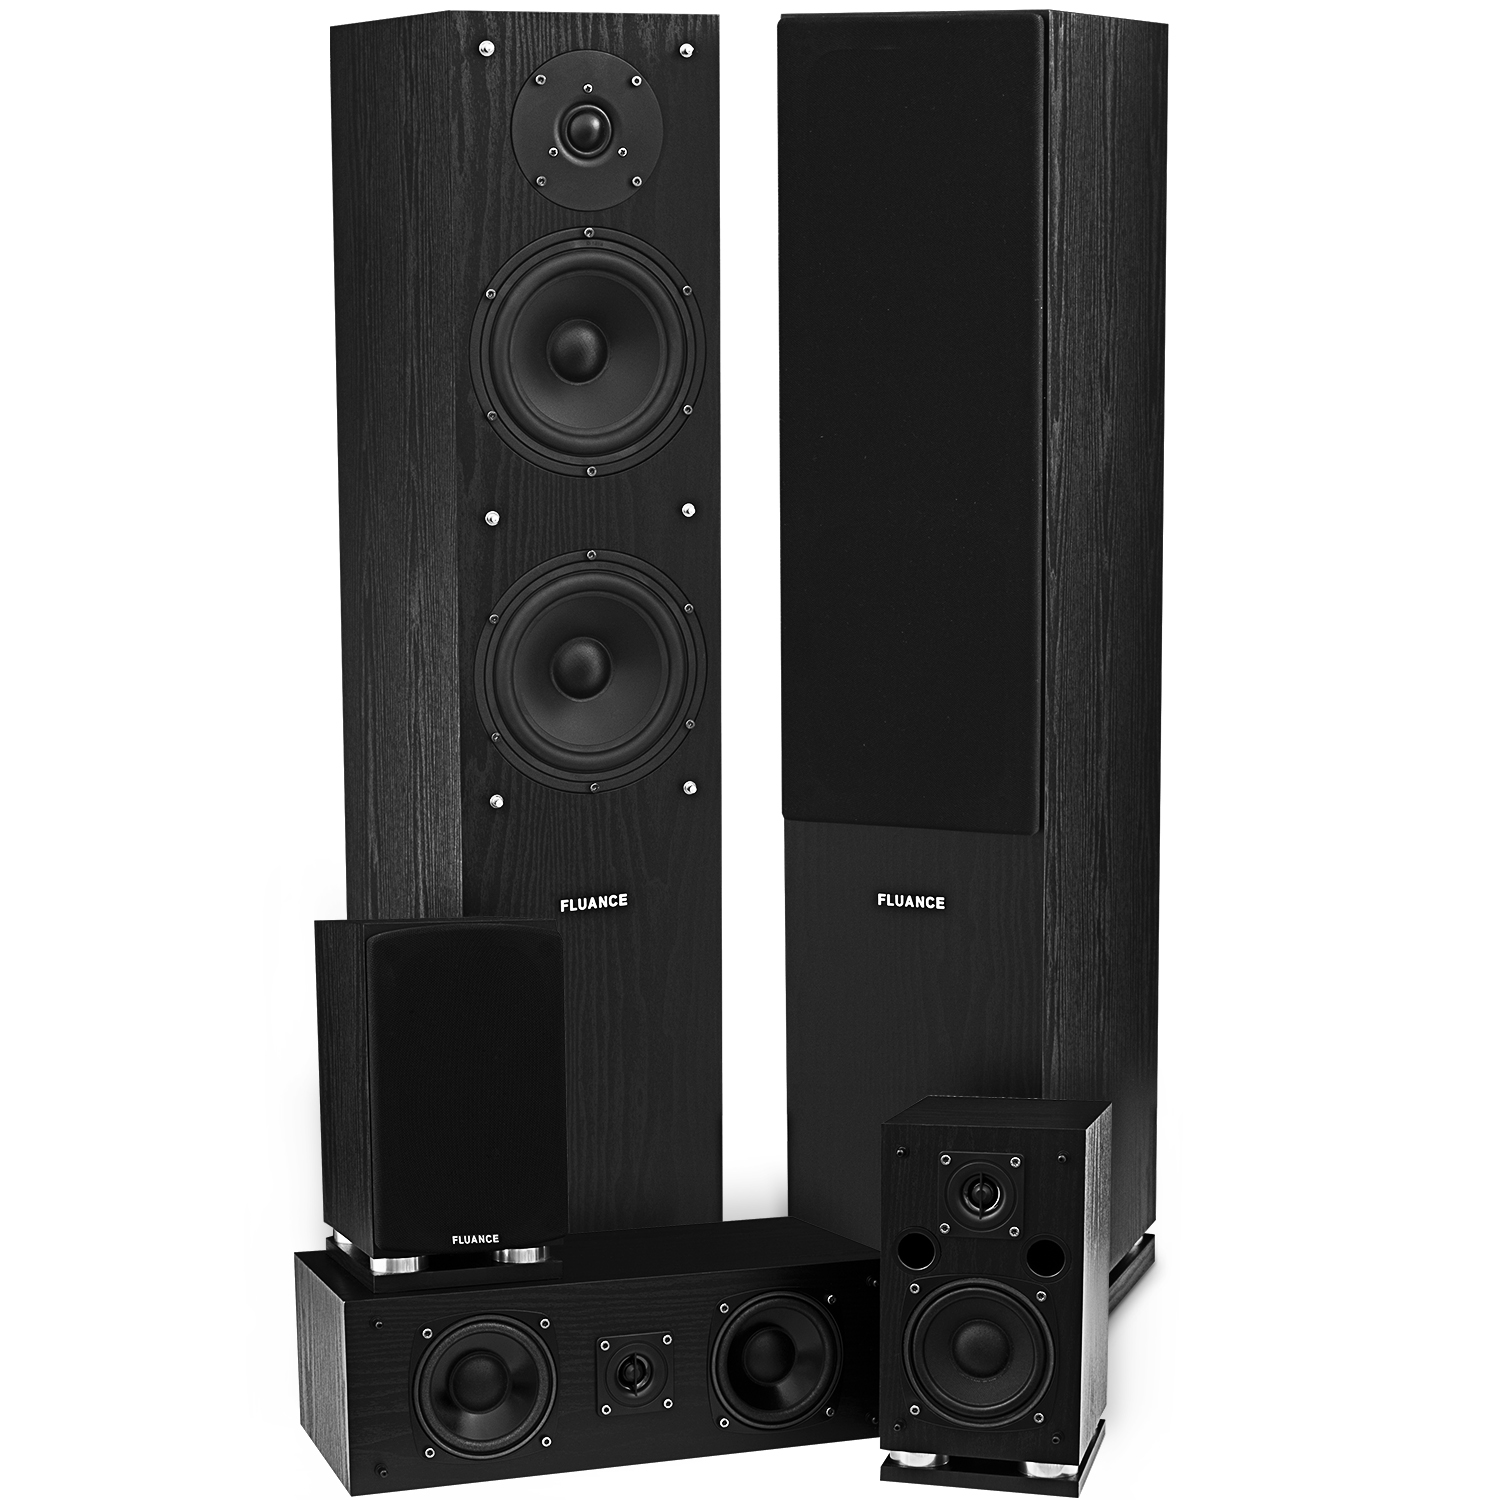 Fluance SXHTB-BK High Definition Surround Sound Home Theater Speaker System